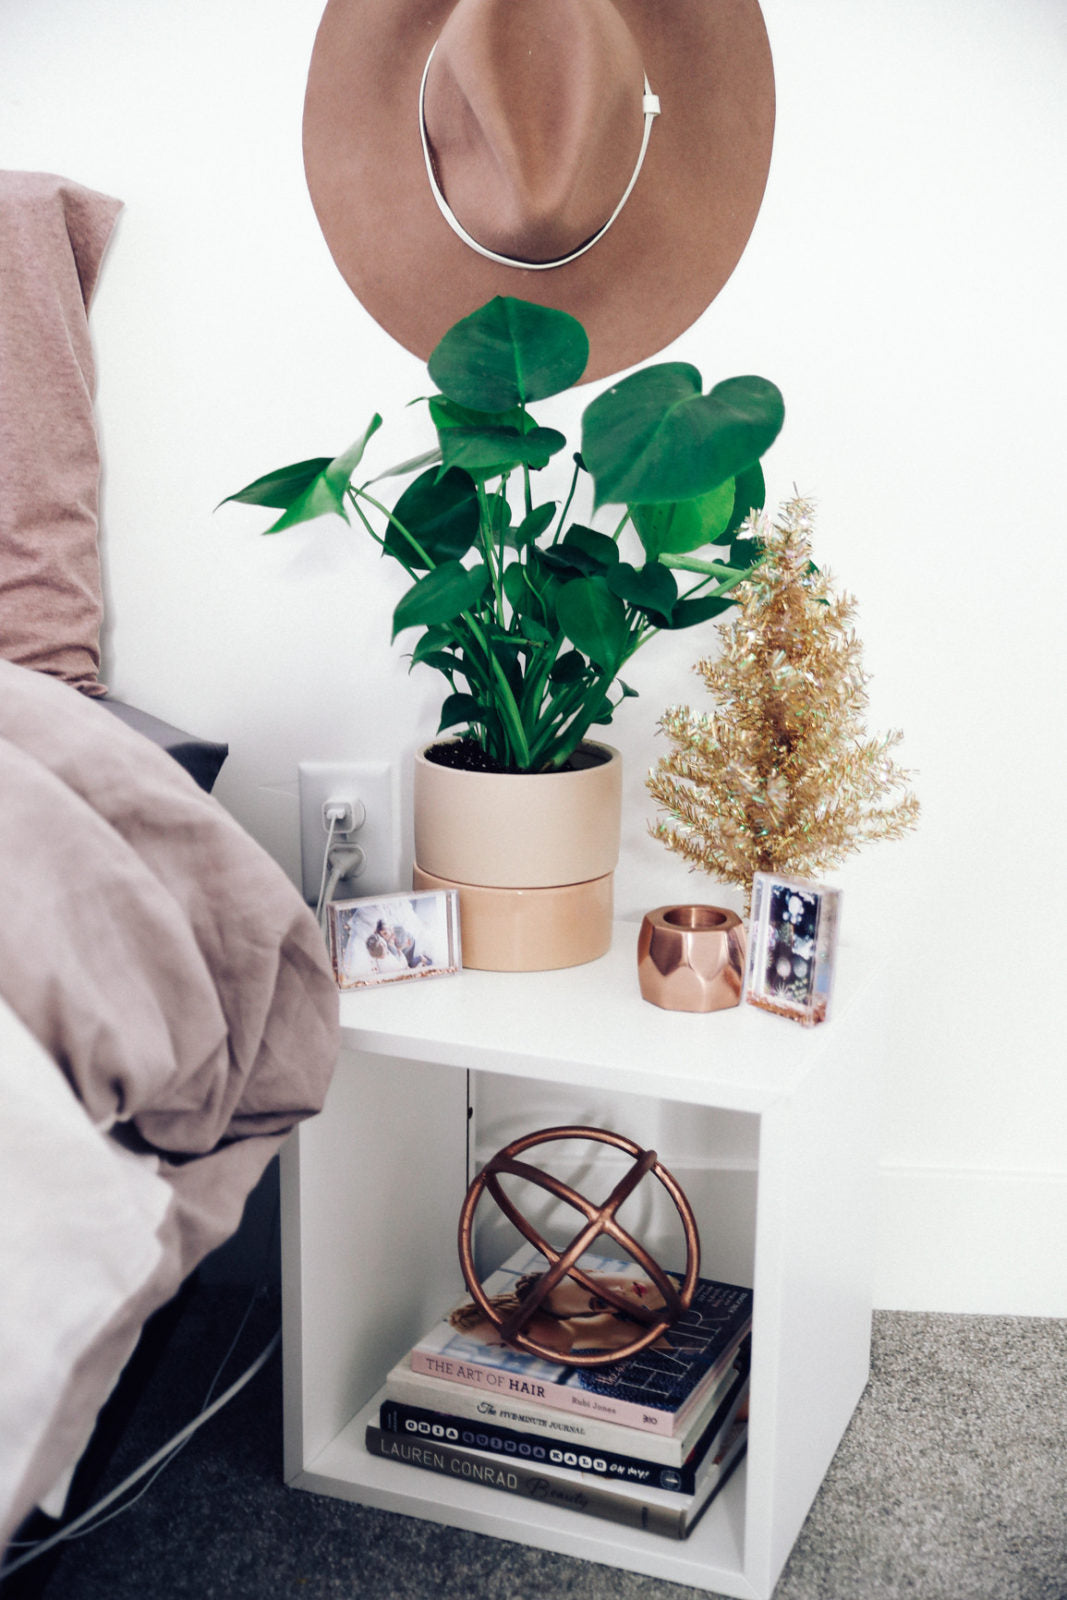 urban-outfitters-fall-winter-room-decor-makeover-ideas-35-1067x1600